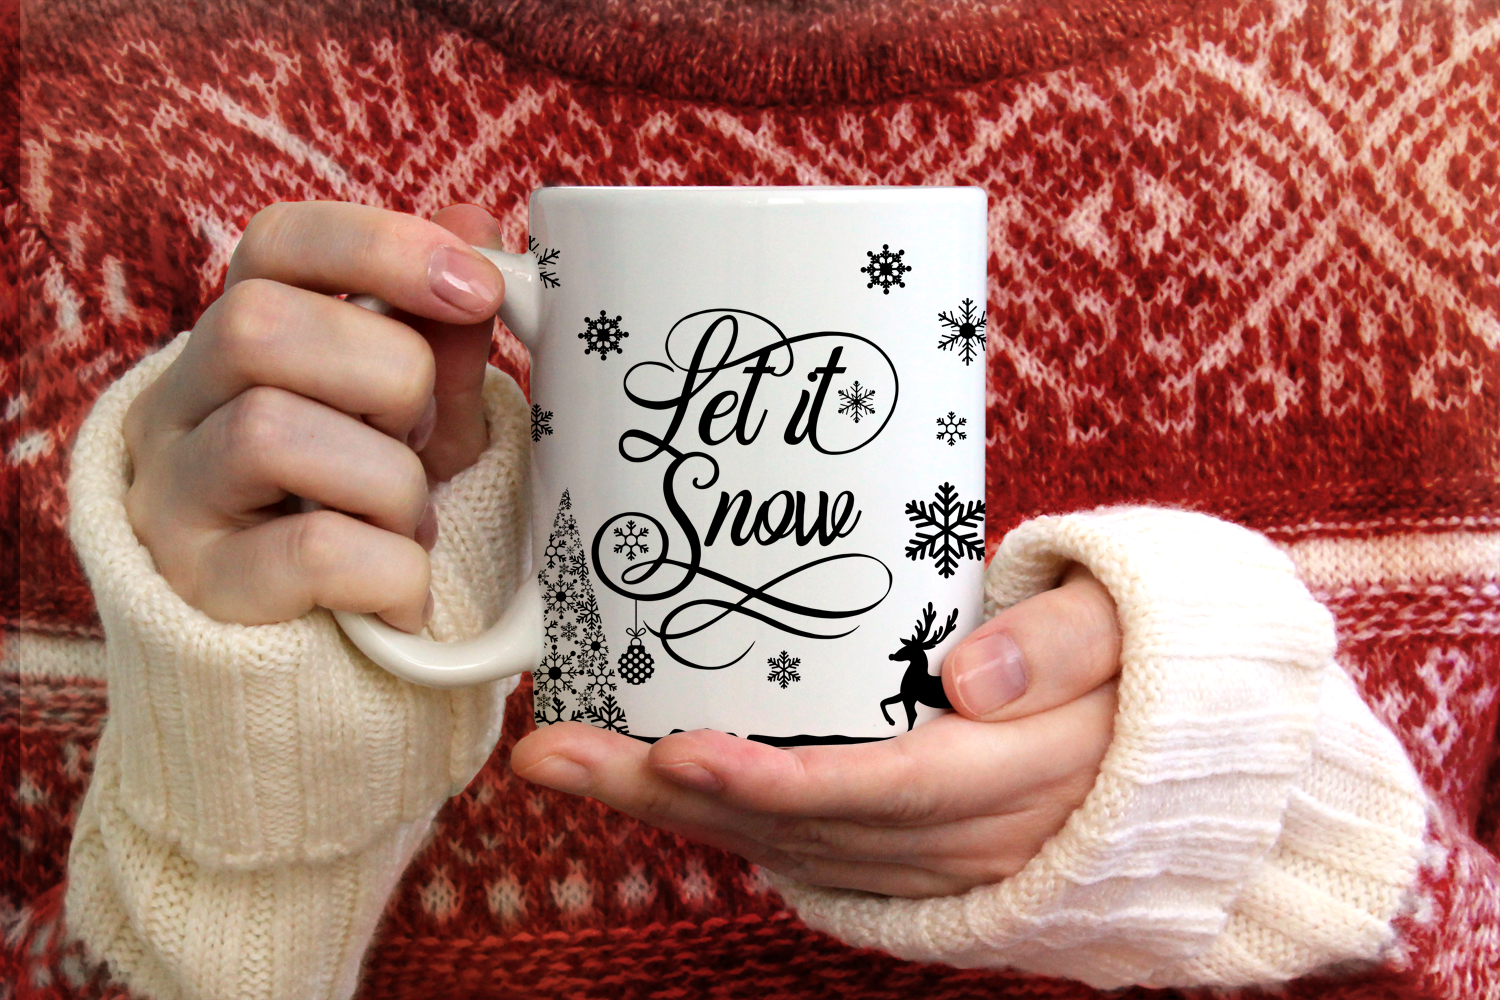 Let it Snow - Christmas SVG Cut File example image 3